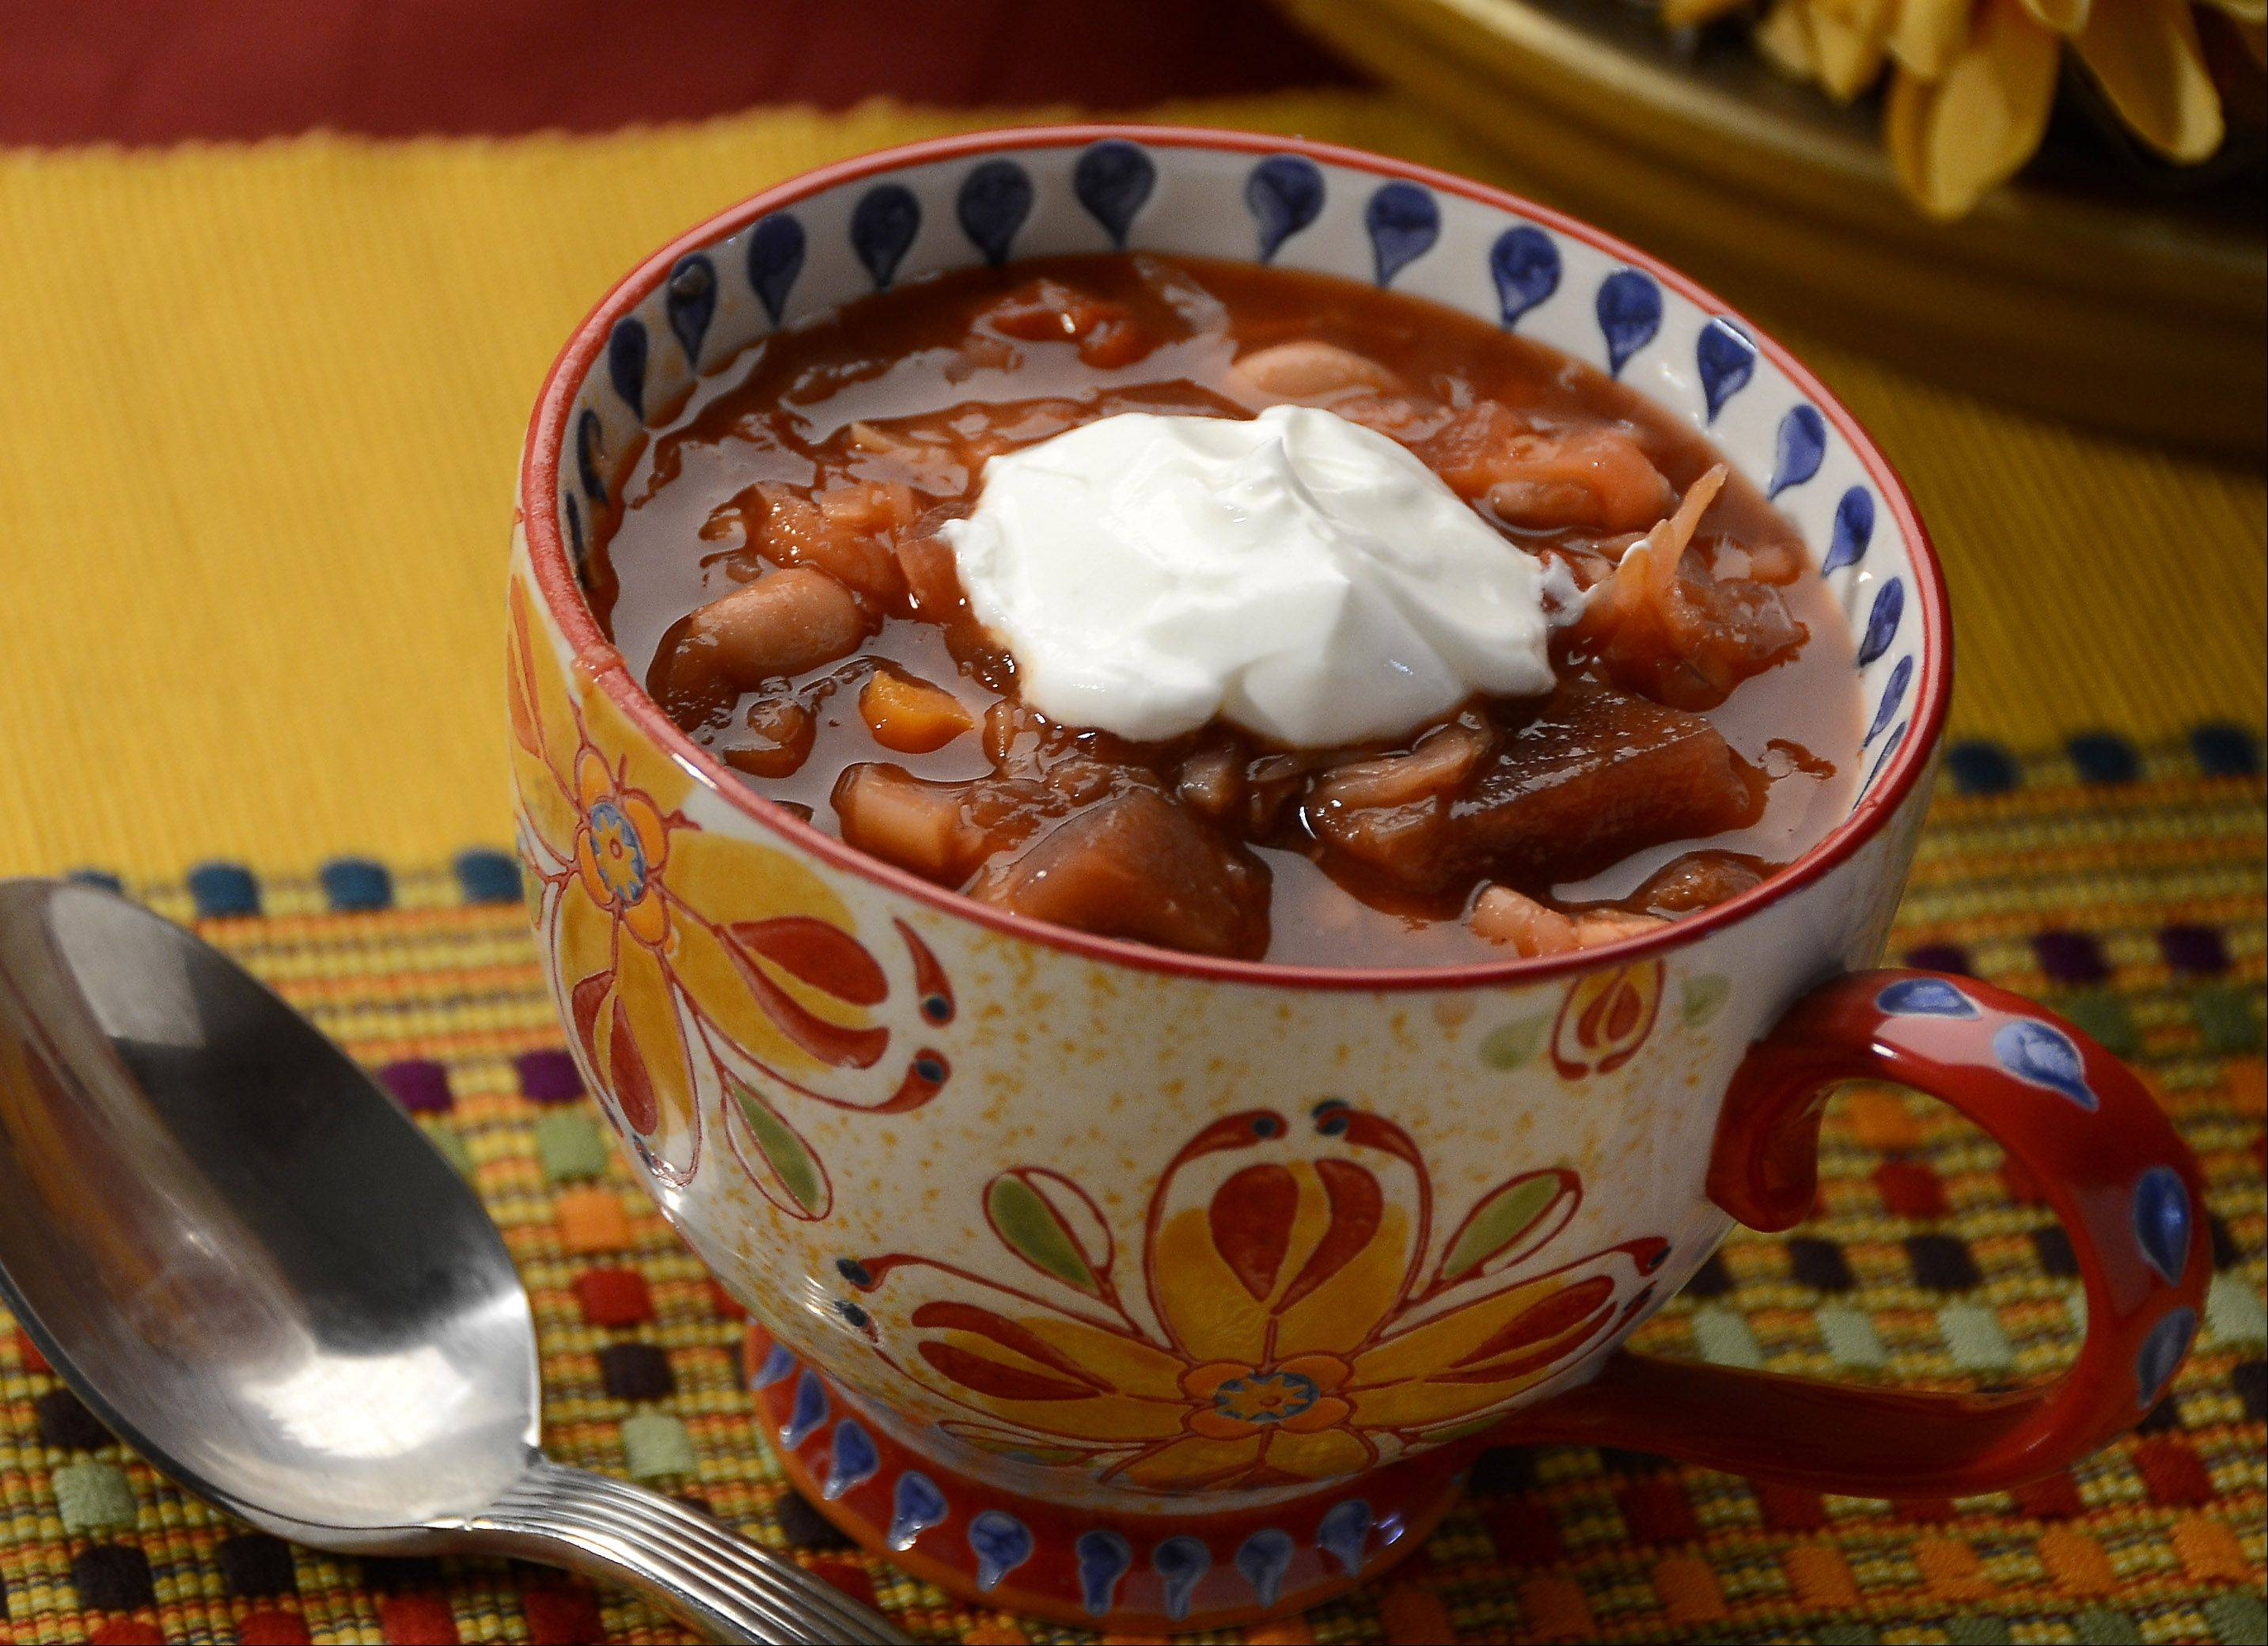 Borscht, an Eastern European soup that starts with cabbage and beets, can be served warm or cold.